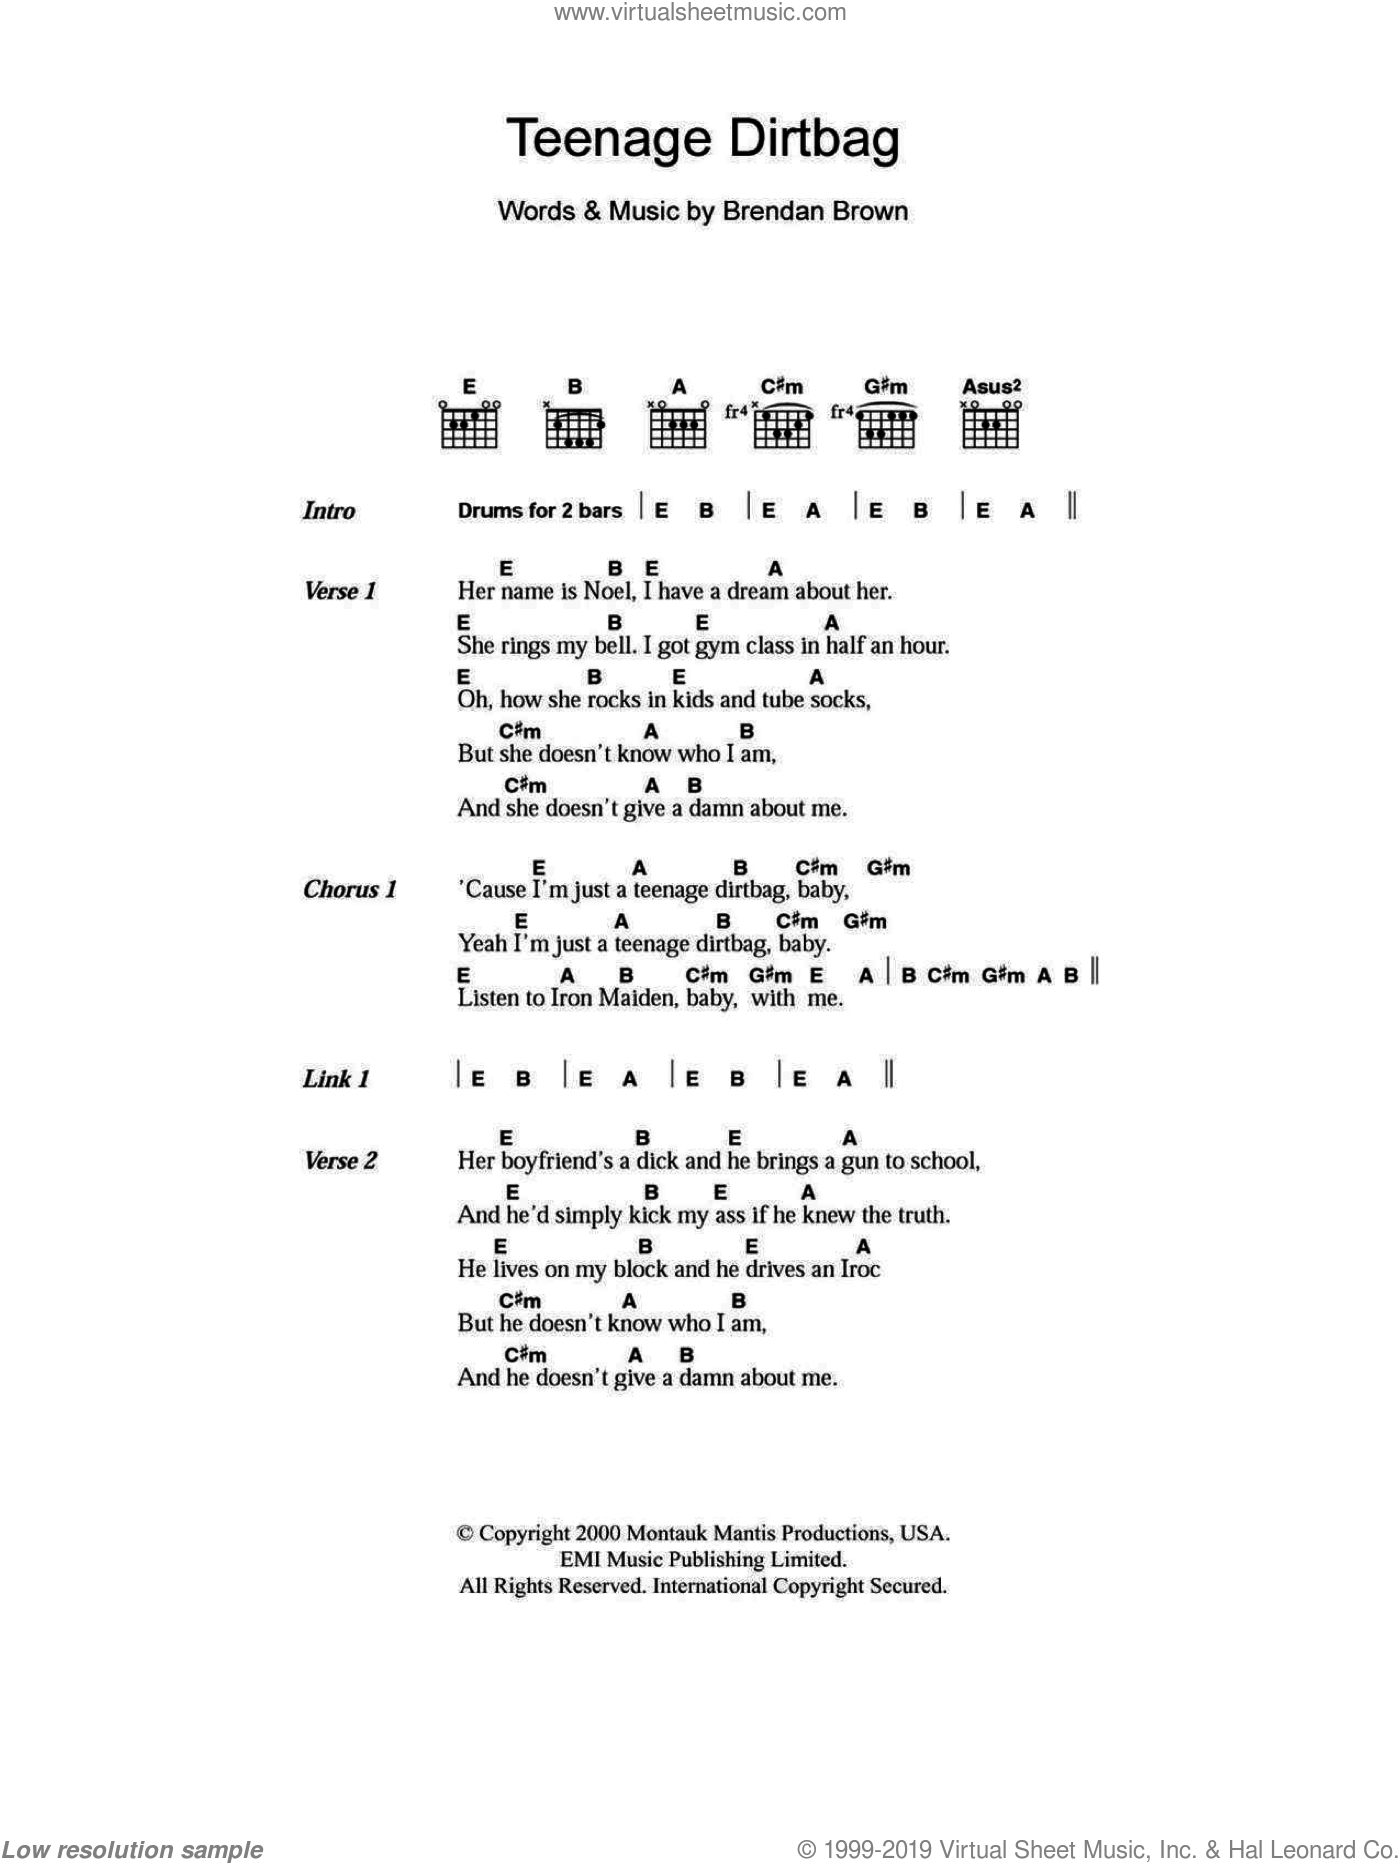 Wheatus - Teenage Dirtbag sheet music for guitar (chords) [PDF]